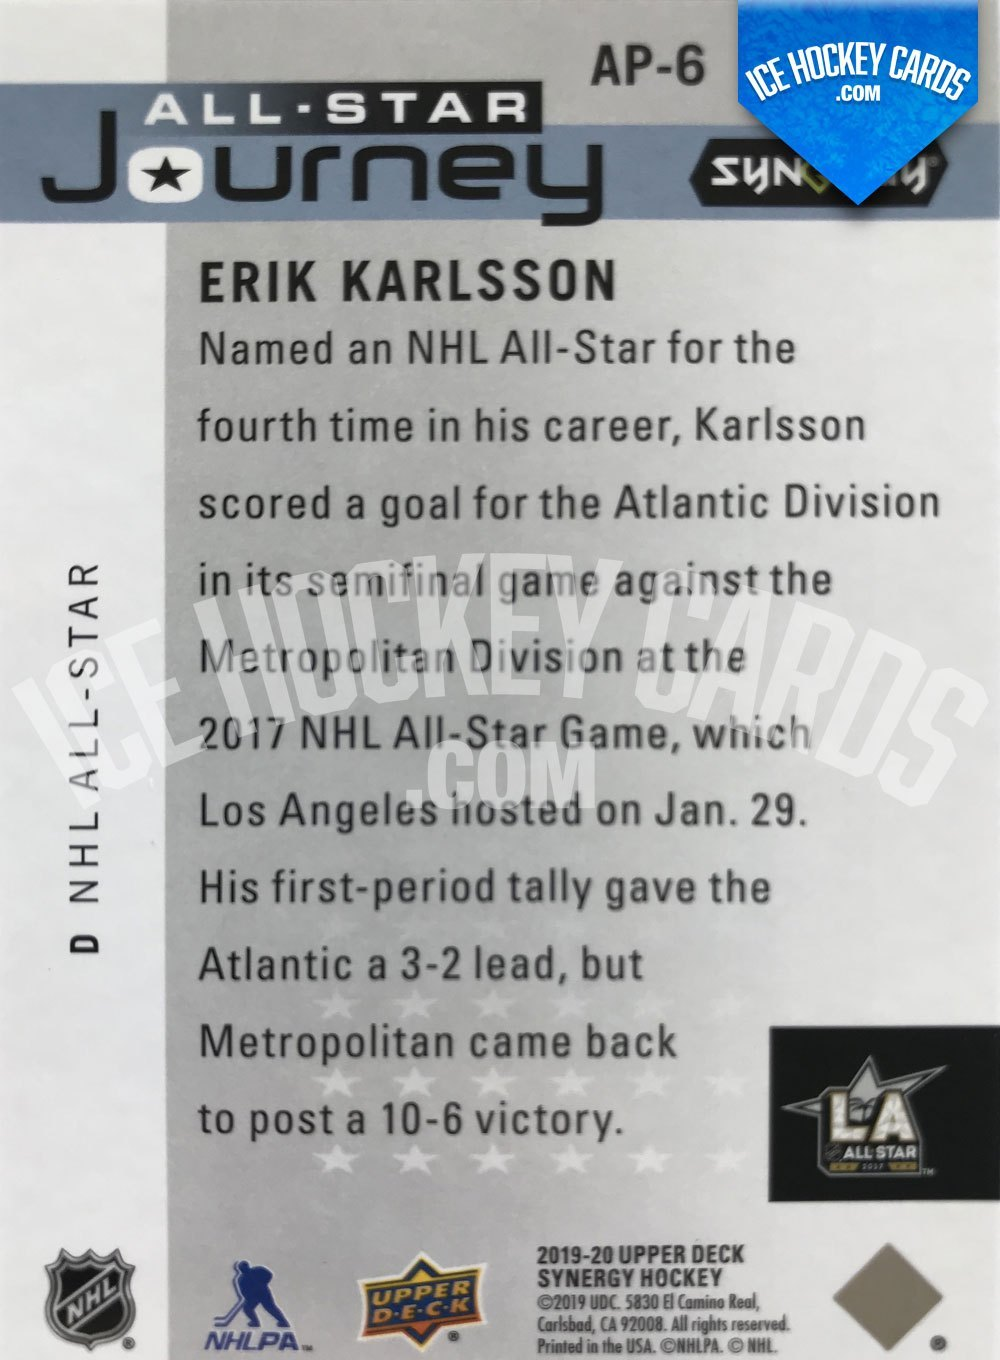 Upper Deck - Synergy 19-20 - Erik Karlsson All-Star Journey back